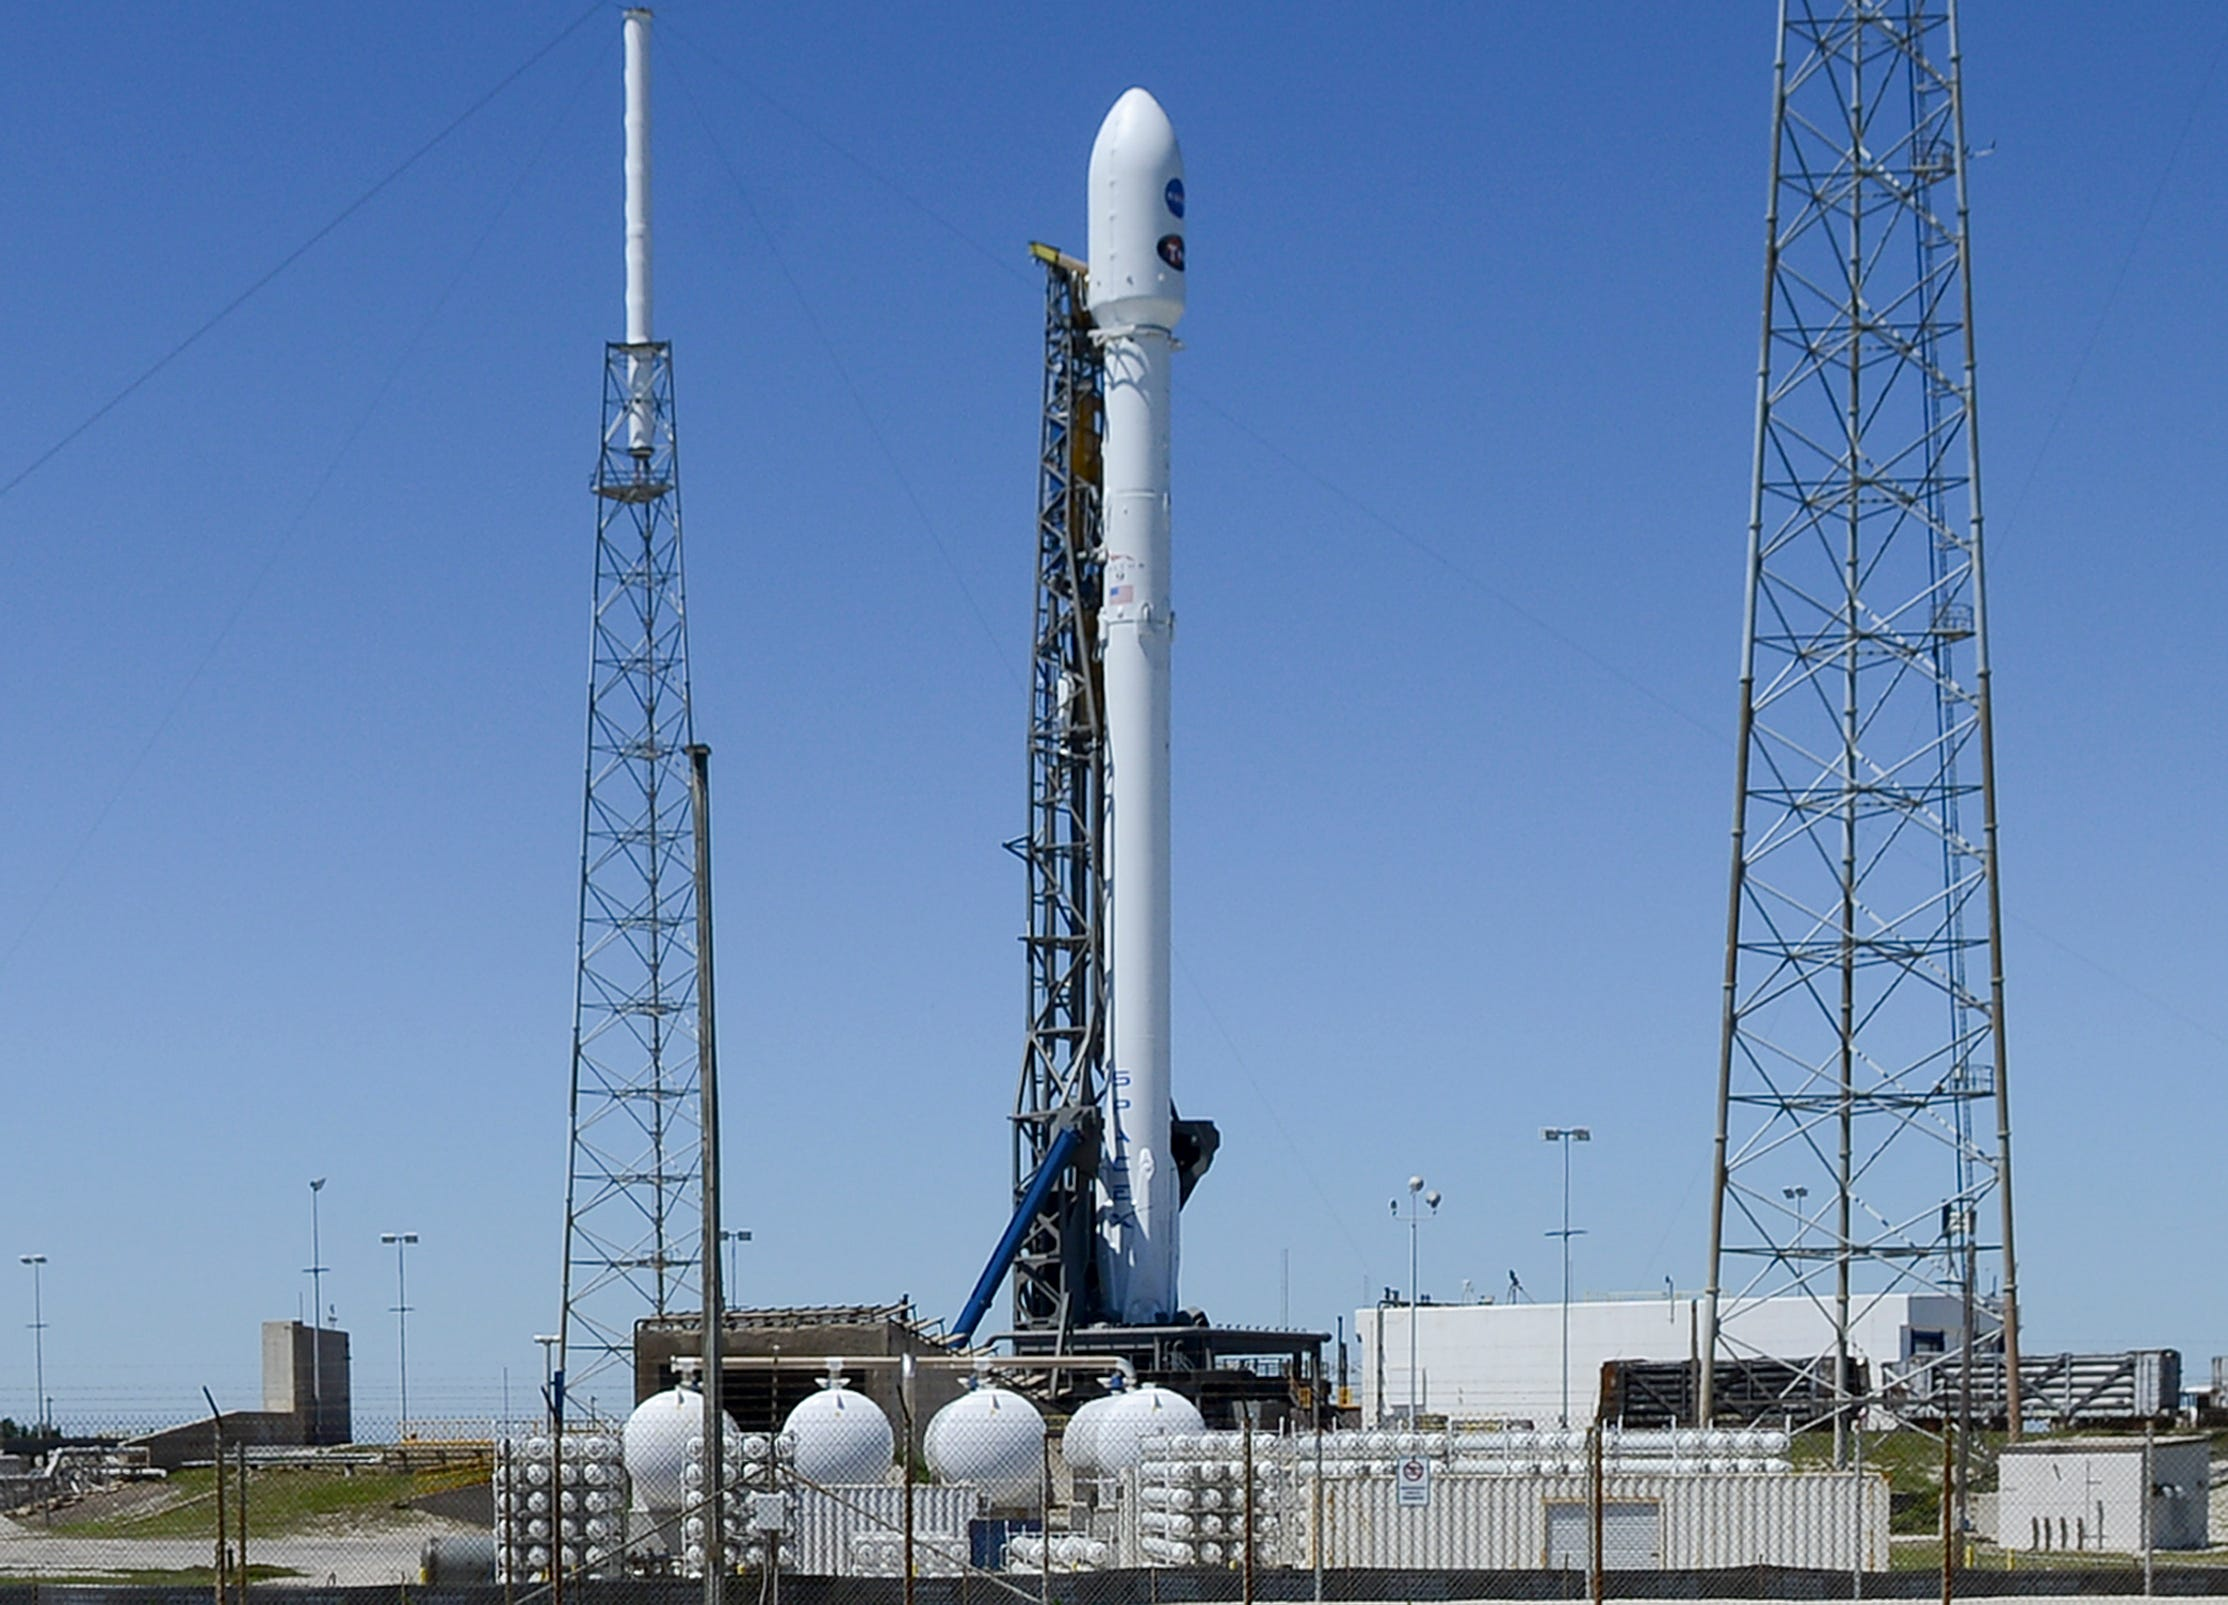 636594962697854971-crb041618-spacex-6- SpaceX and TESS: Forecast clear for SpaceX launch of NASA planet hunter